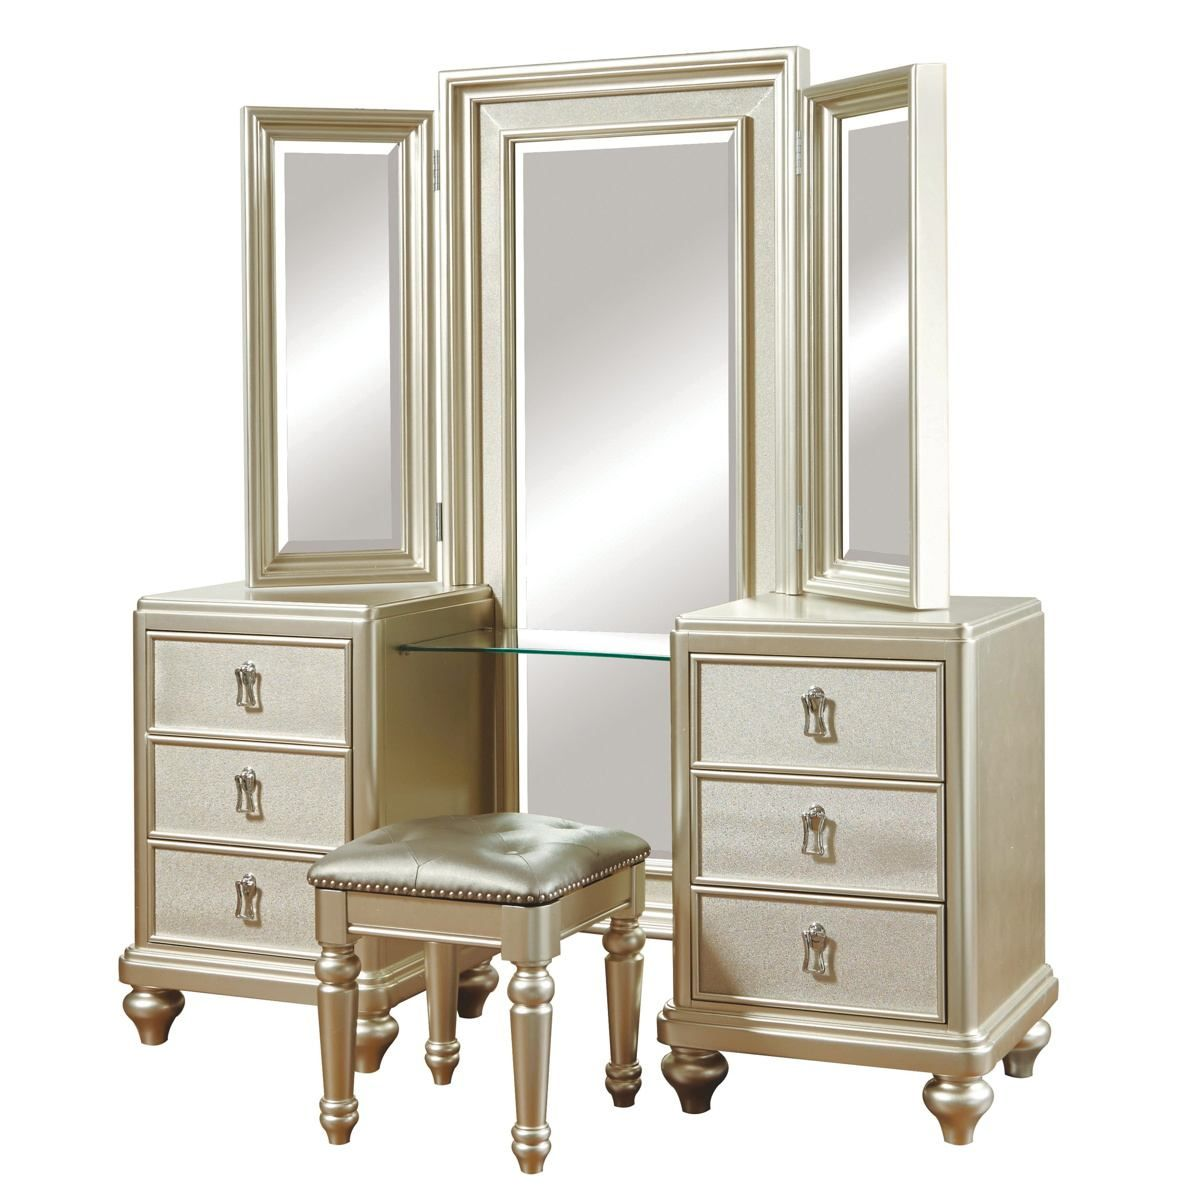 Samuel Lawrence Diva Vanity Dresser And Mirror W Stool In Lustrous Platinum Vanity Dresser With Images Upholstered Bedroom Set Diva Bedroom Set Diva Bedroom